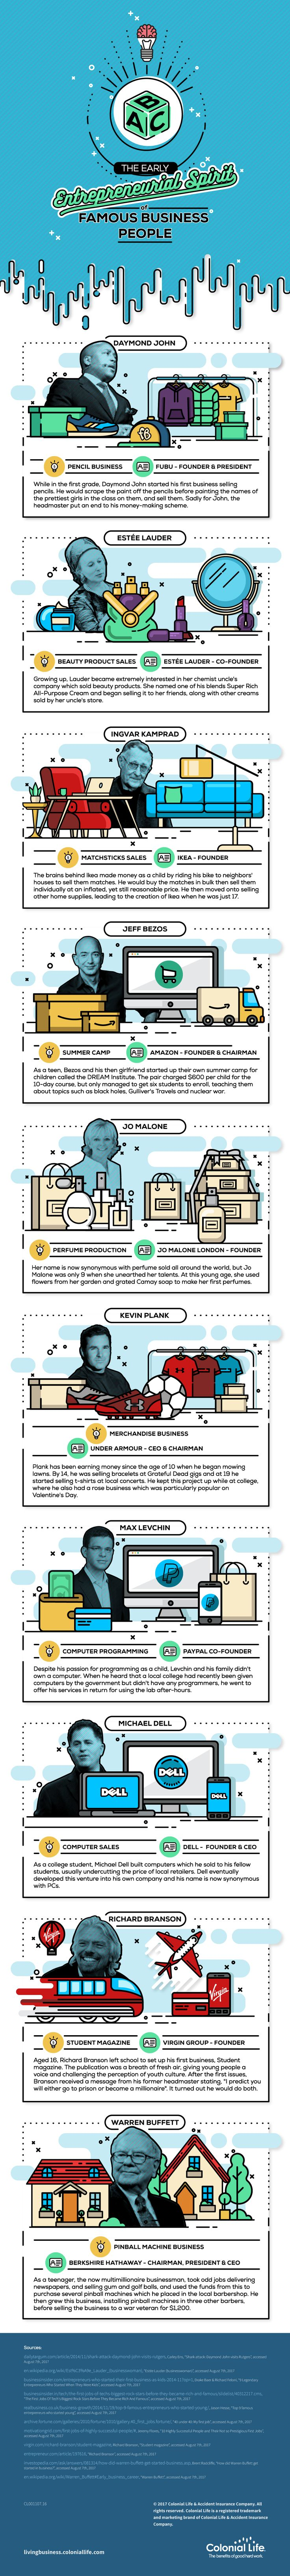 The Early Entrepreneurial Spirit of Famous Business People [Infographic]